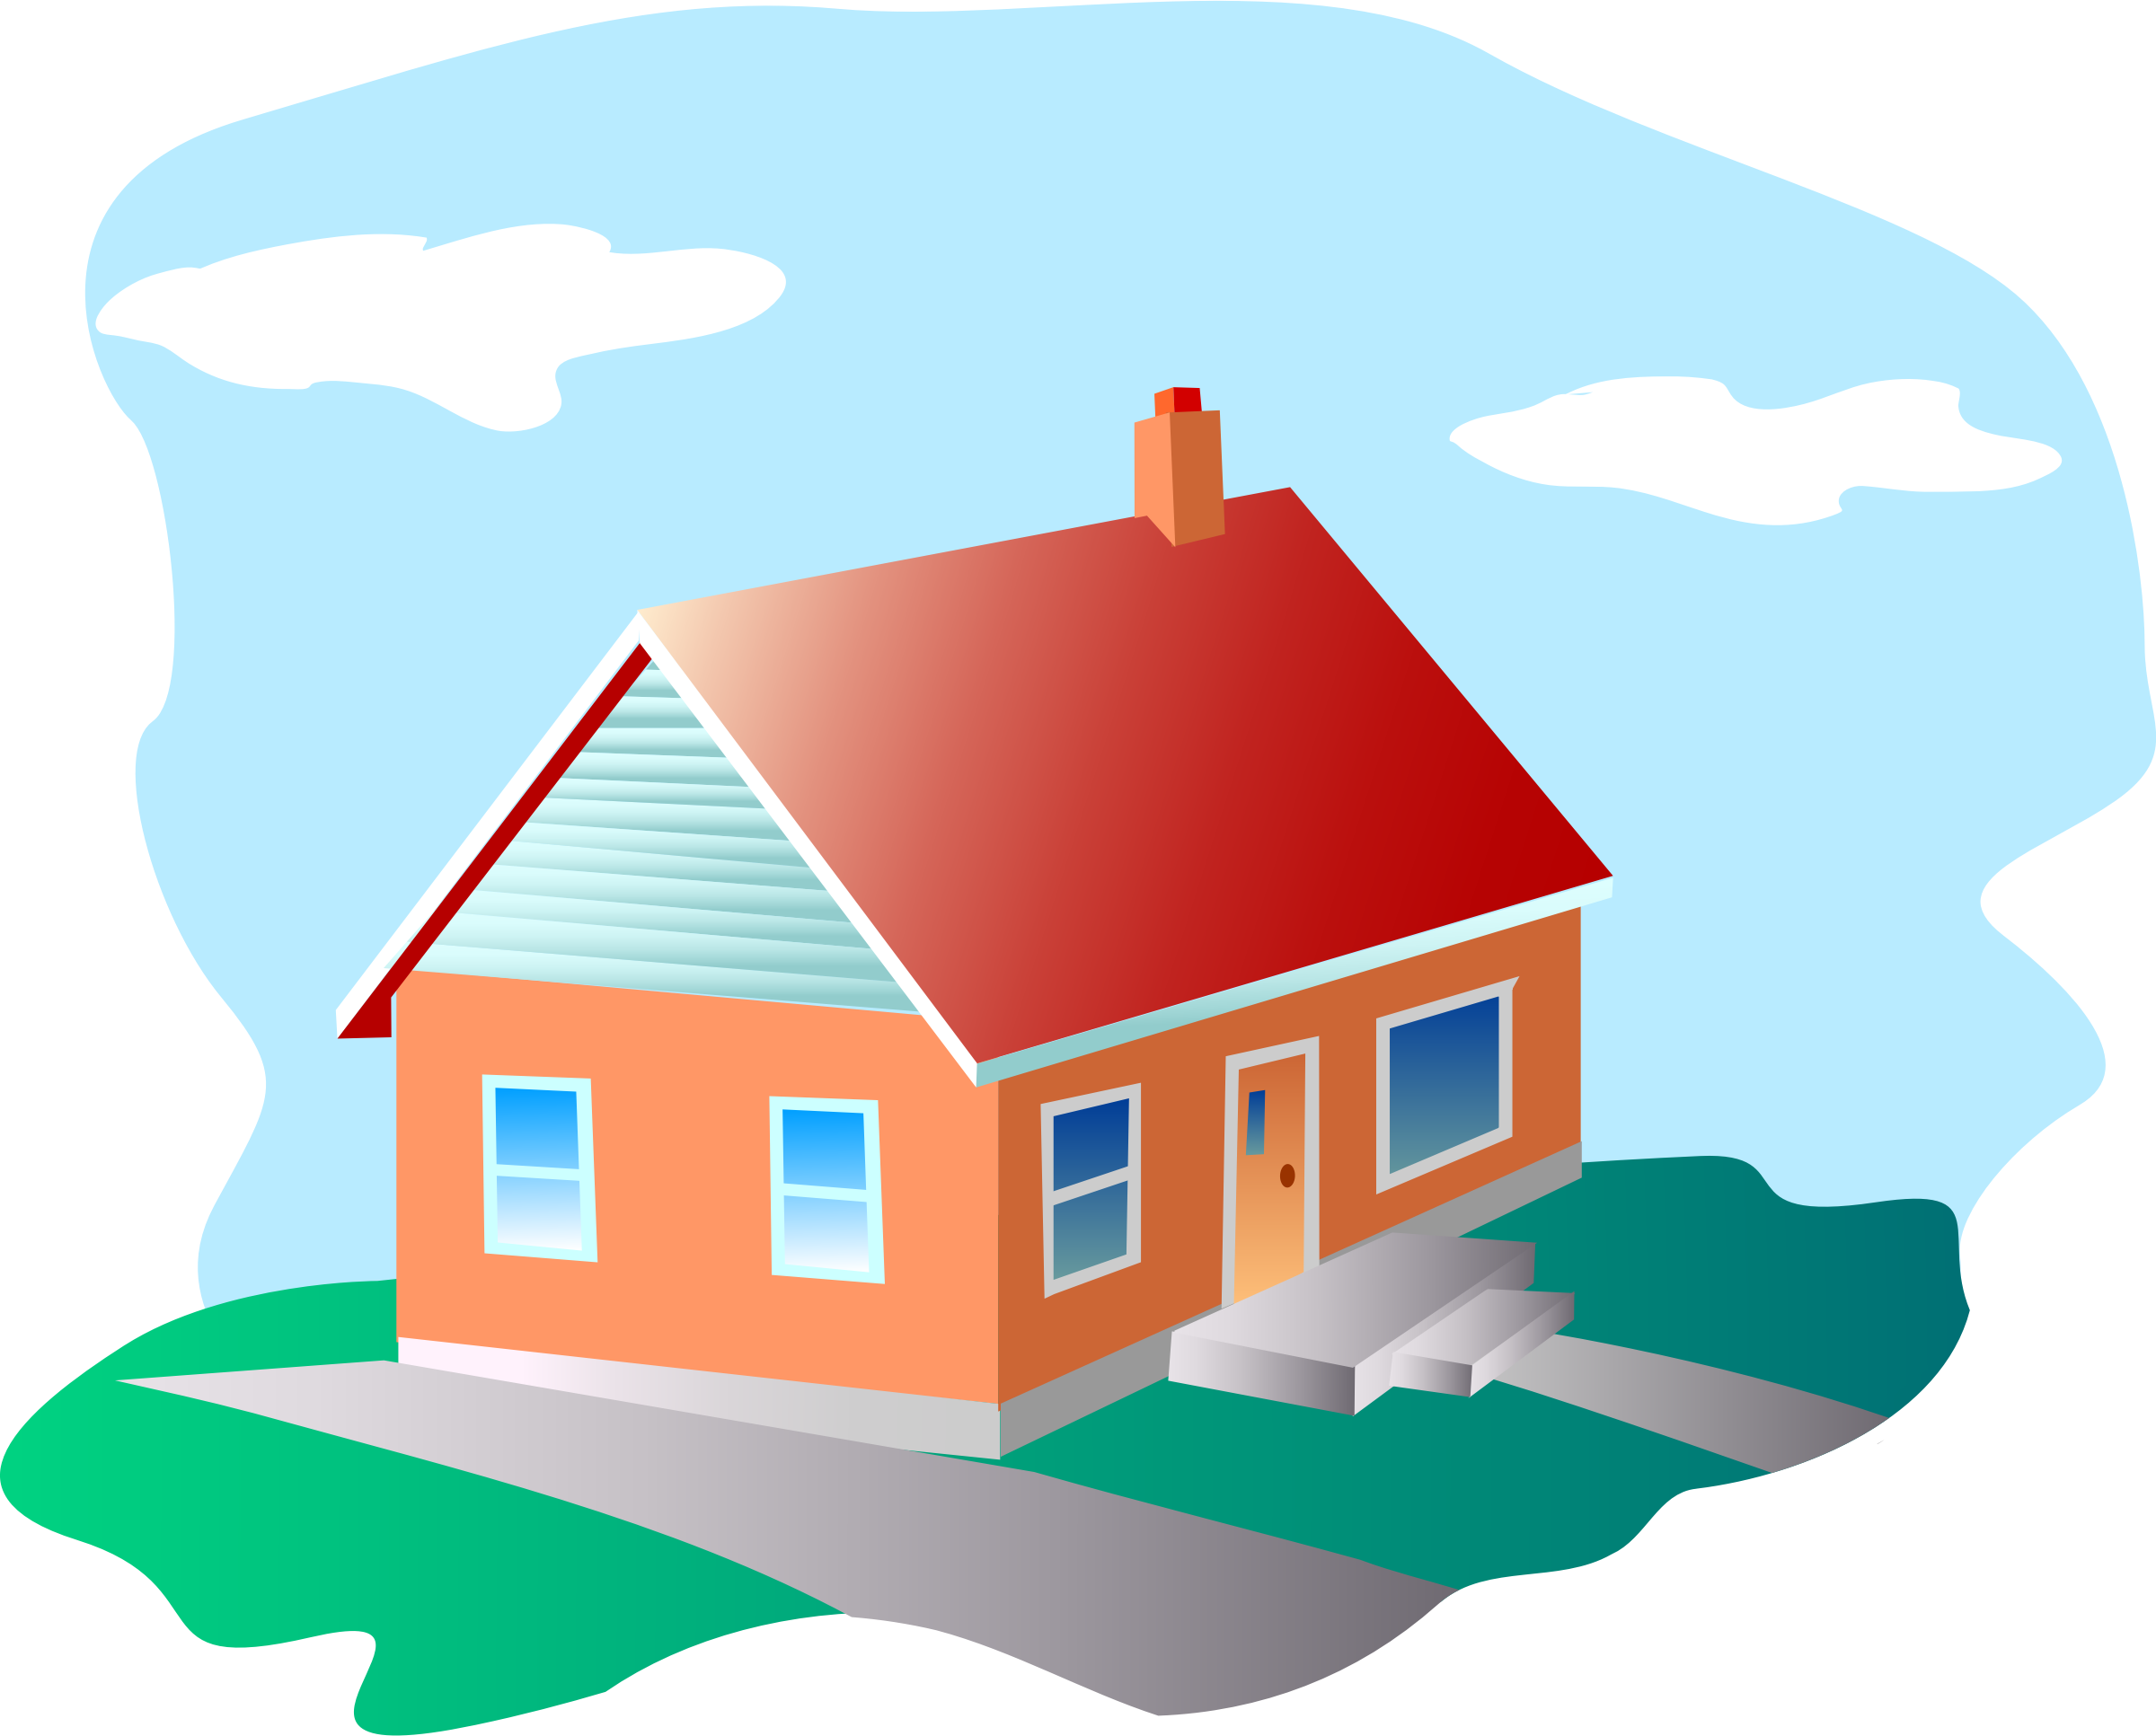 Animated house clipart clip art free 28+ Collection of House And Lot Clipart | High quality, free ... clip art free